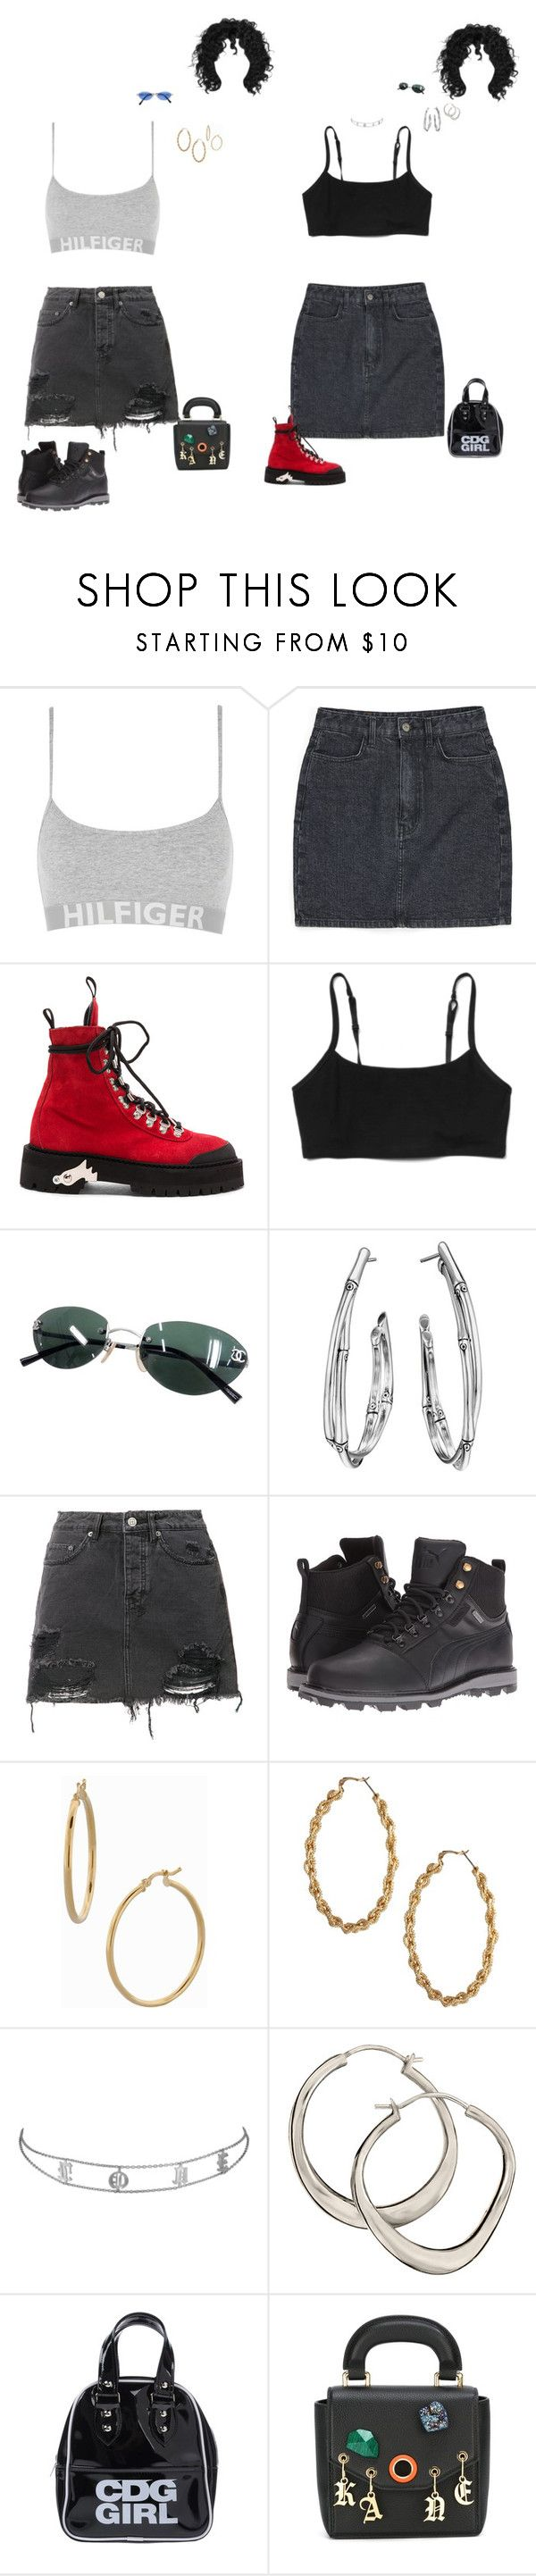 """""""Untitled #235"""" by dastylez ❤ liked on Polyvore featuring Tommy Hilfiger, Off-White, Gap, Chanel, John Hardy, Ksubi, Puma, Bony Levy, ASOS and Dinny Hall"""